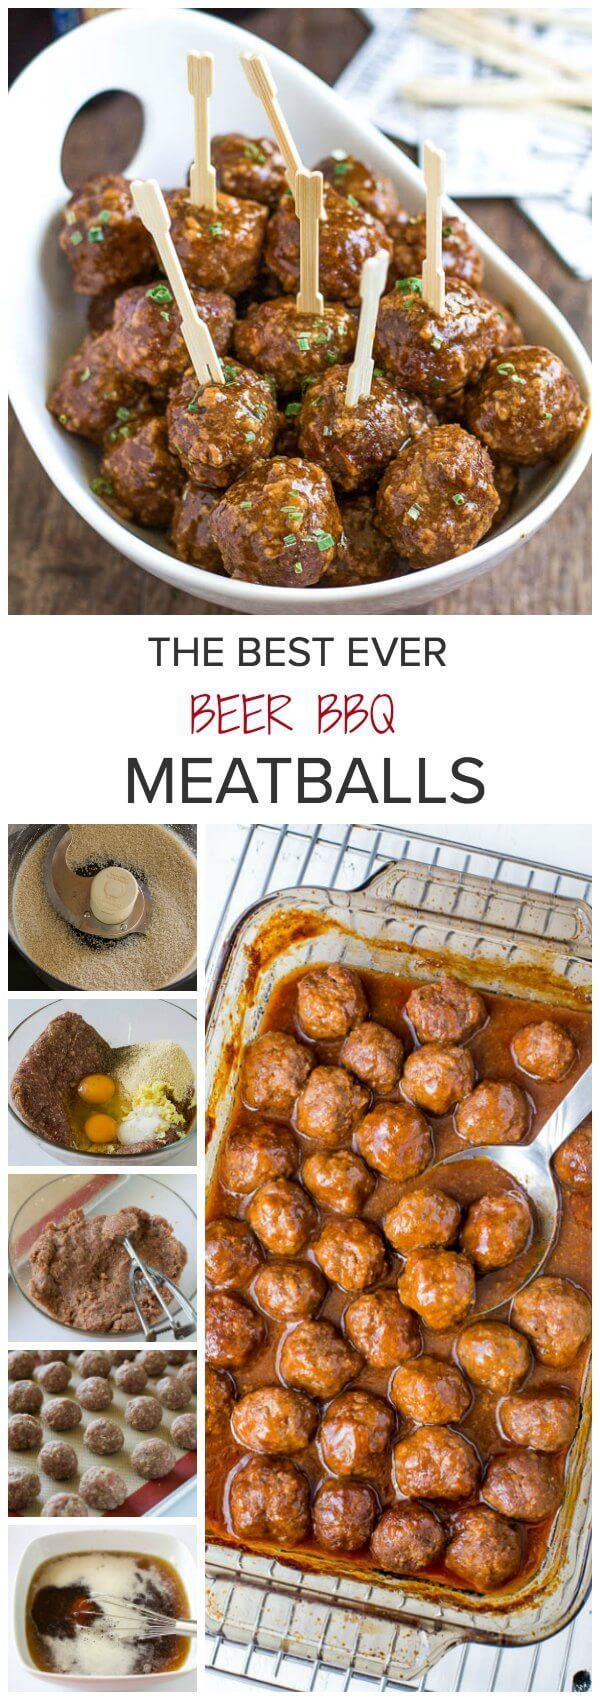 Ditch that grape jelly cocktail meatball recipe. And spoil your guests with beer BBQ meatballs instead! Juicy tender meatballs in smoky, rich and slightly sweet beer bbq sauce. The BEST!